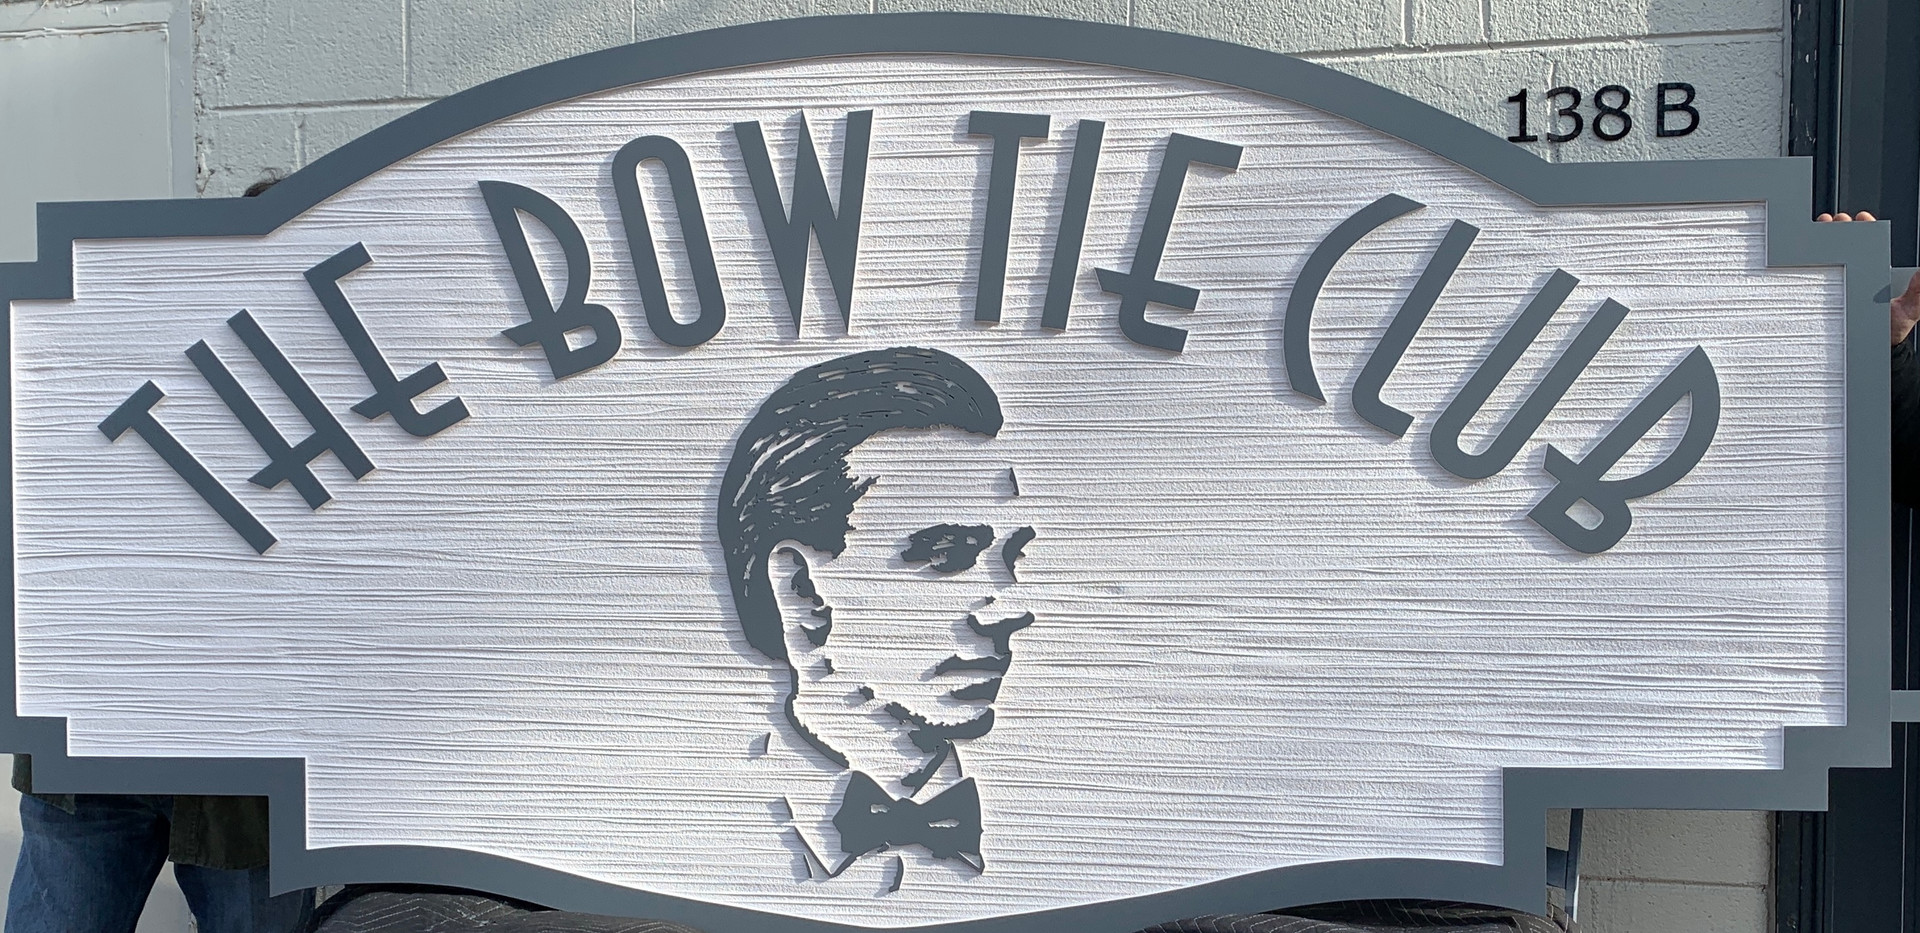 The Bow Tie Club, TN